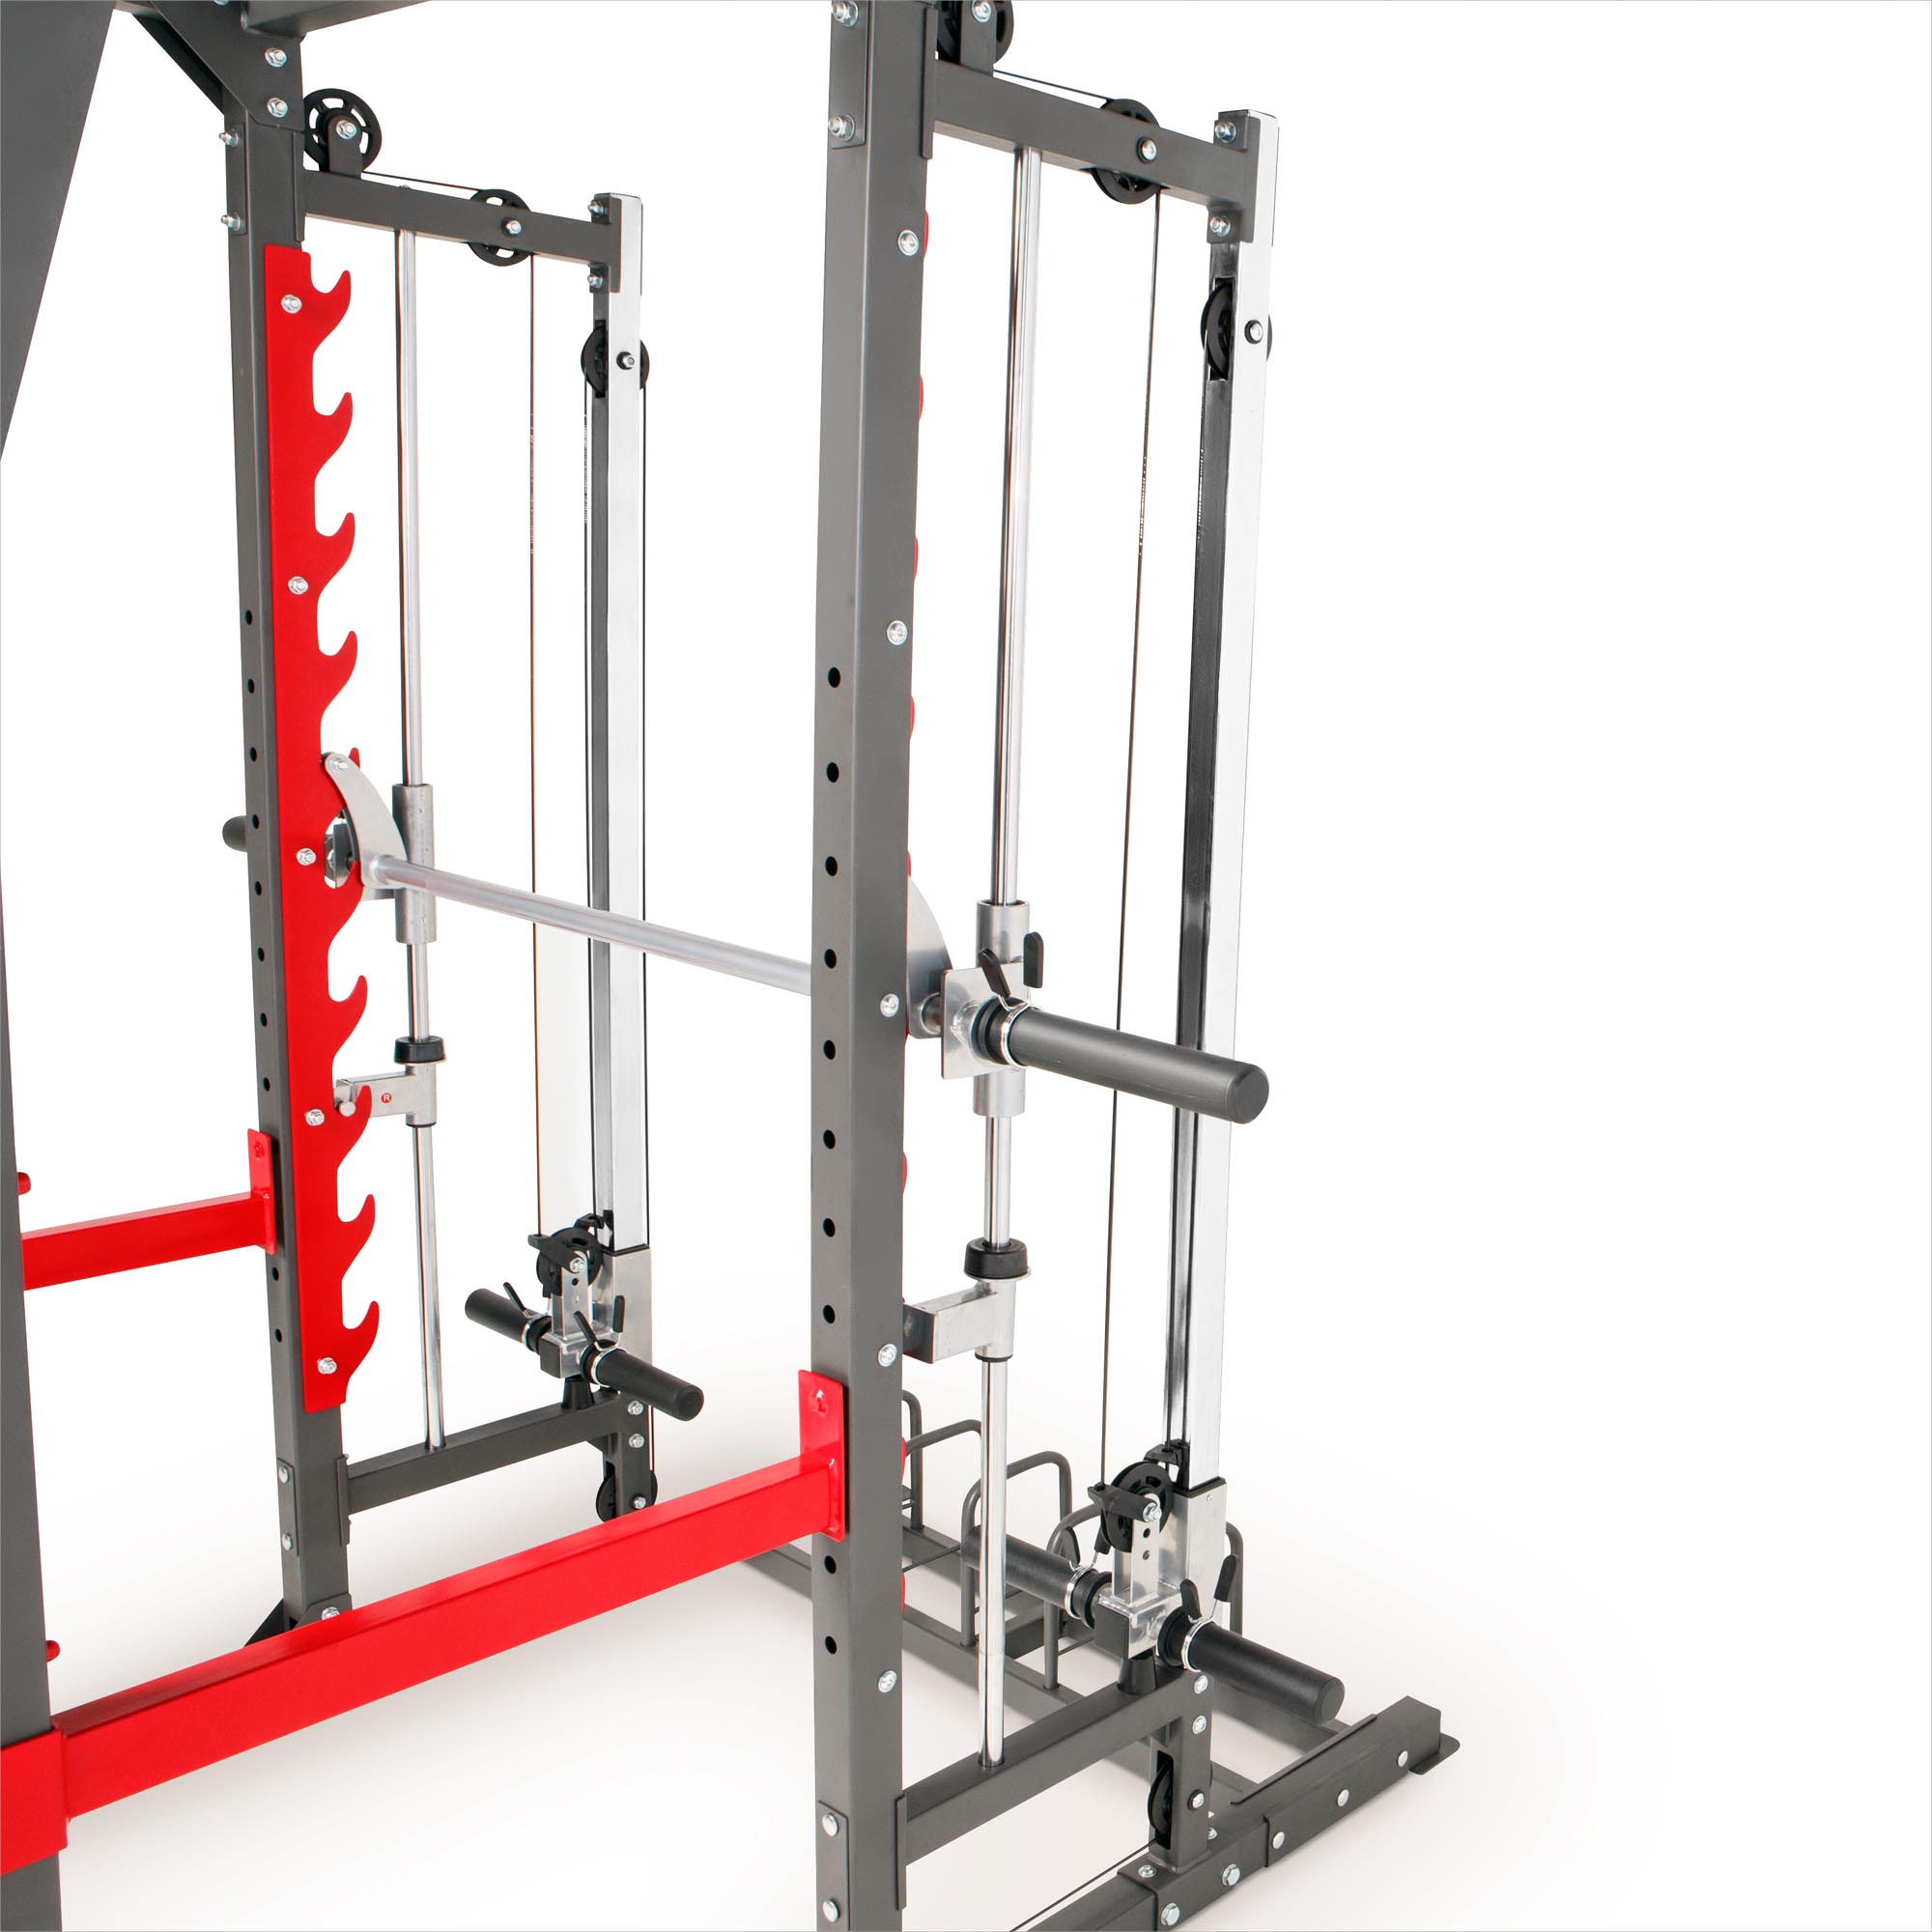 Marcy Pro Smith Machine Weight Bench Home Gym Total Body